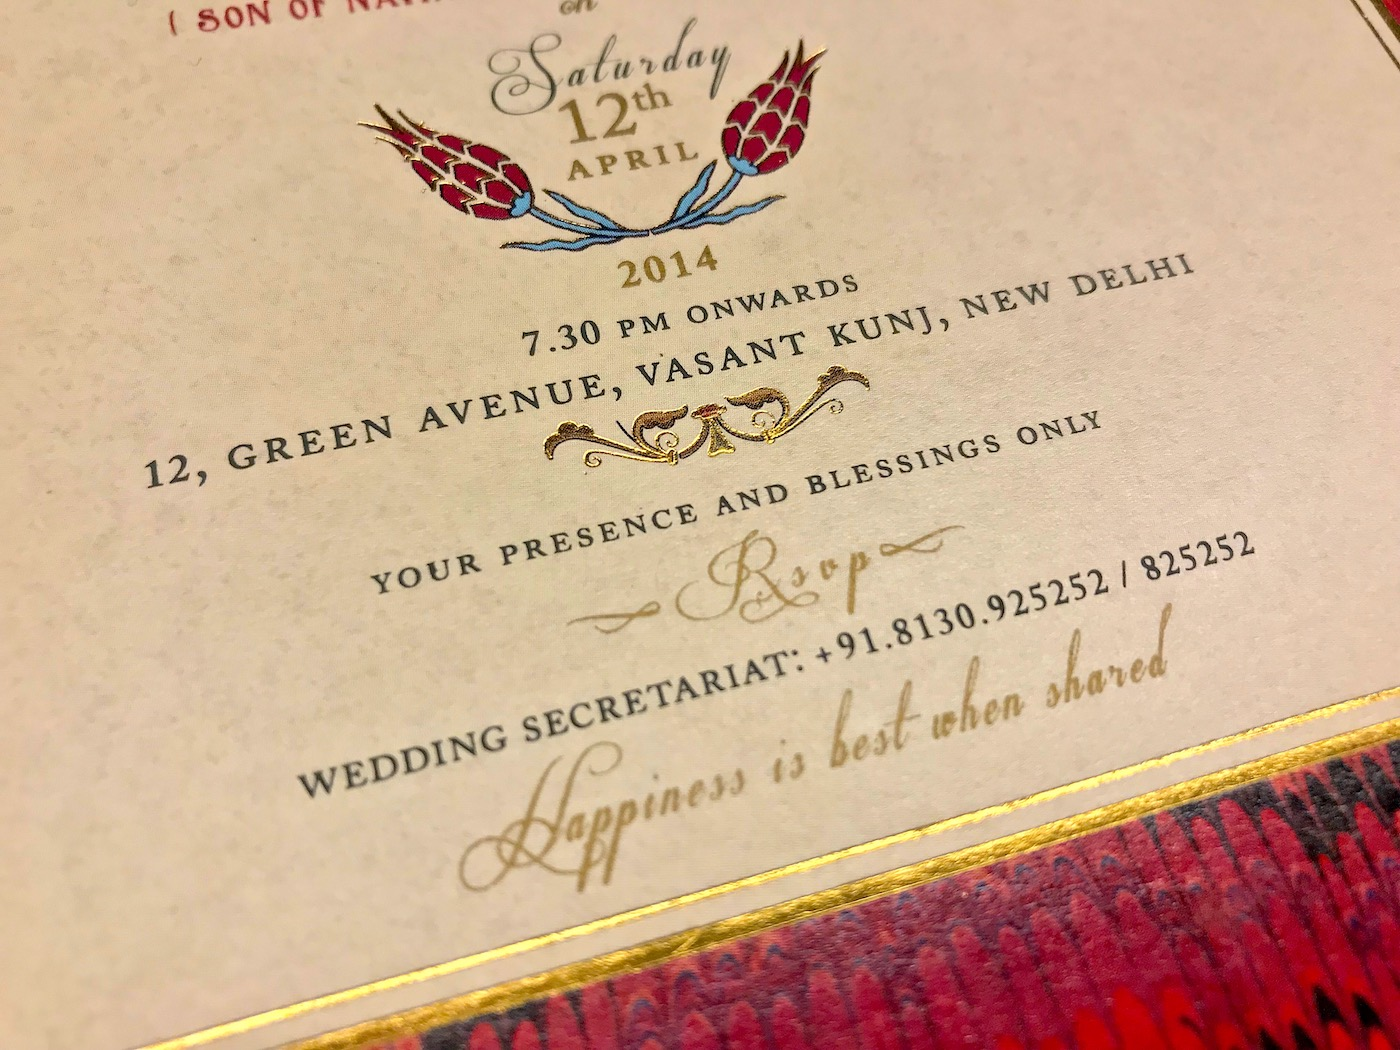 Wedding Invitation Quote   Happiness Is Best When Shared   For Indian  Wedding Invite That Goes